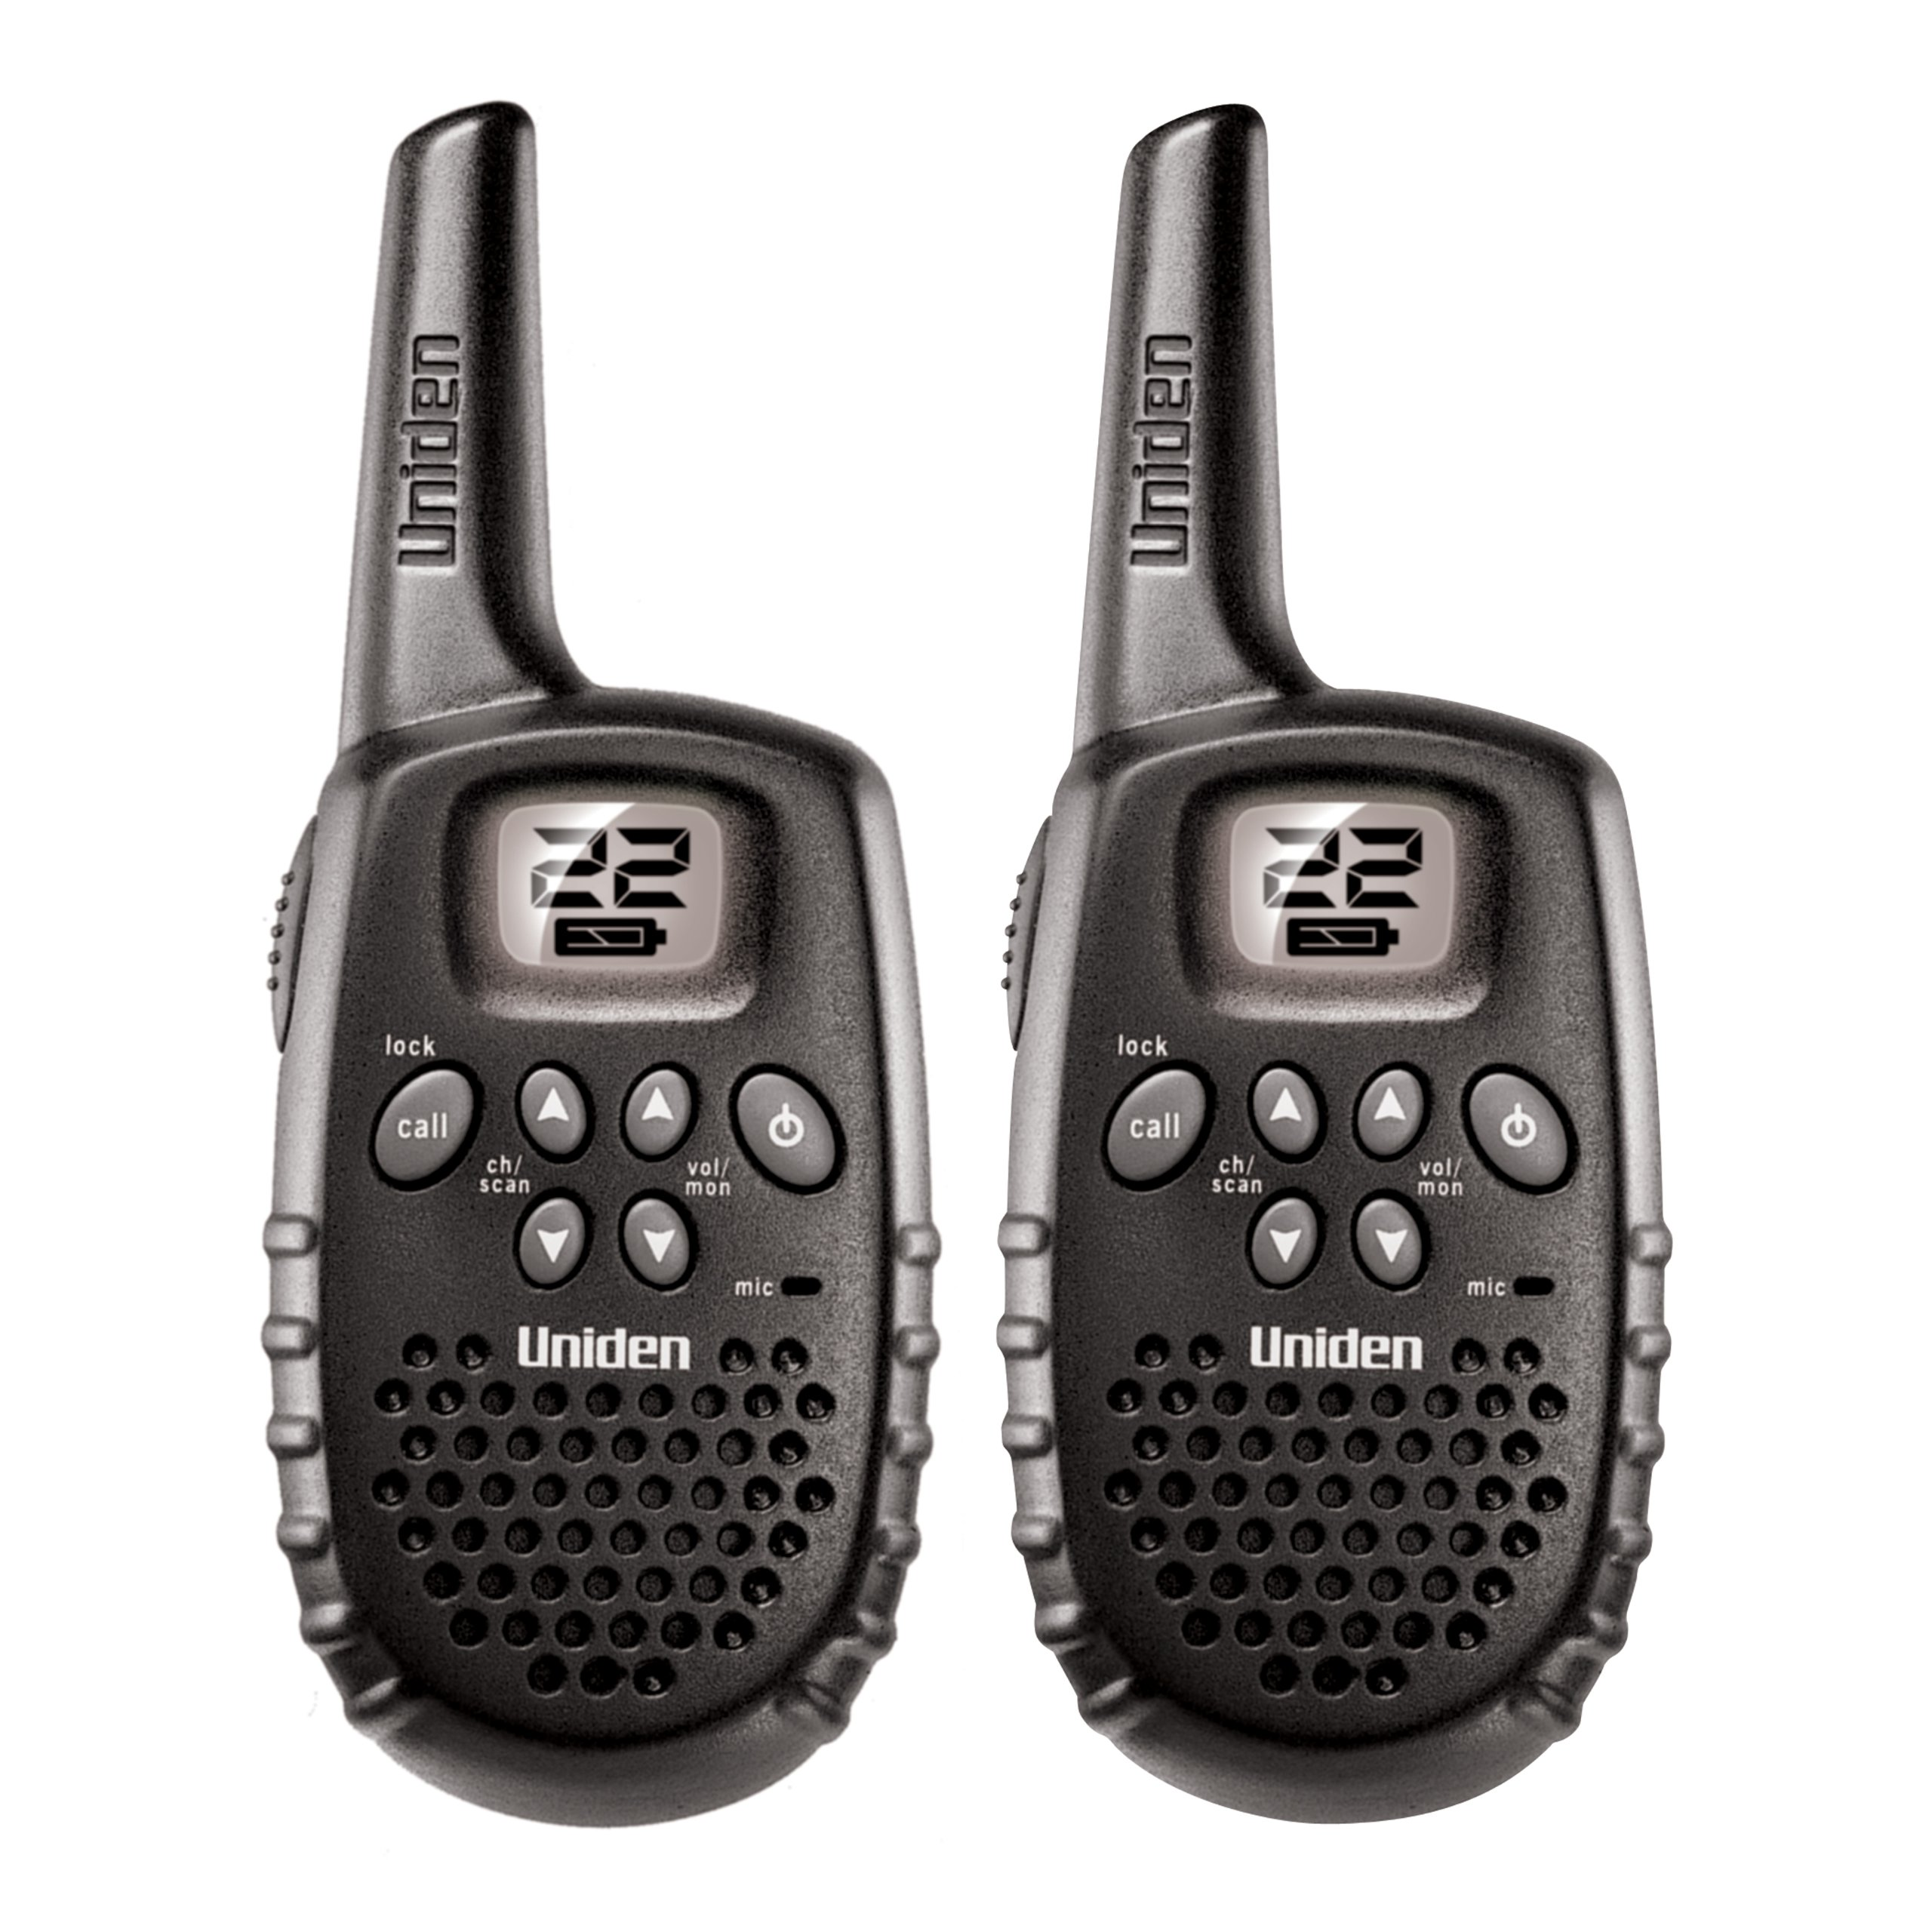 Uniden GMR1635-2 Up to 16-Mile Range, FRS Two-Way Radio Walkie Talkies, 22 Channels with Channel Scan, Battery Strength Meter, Roger Beep, (Discontinued by Manufacturer, Replaced by Uniden SX167-2C) by Uniden